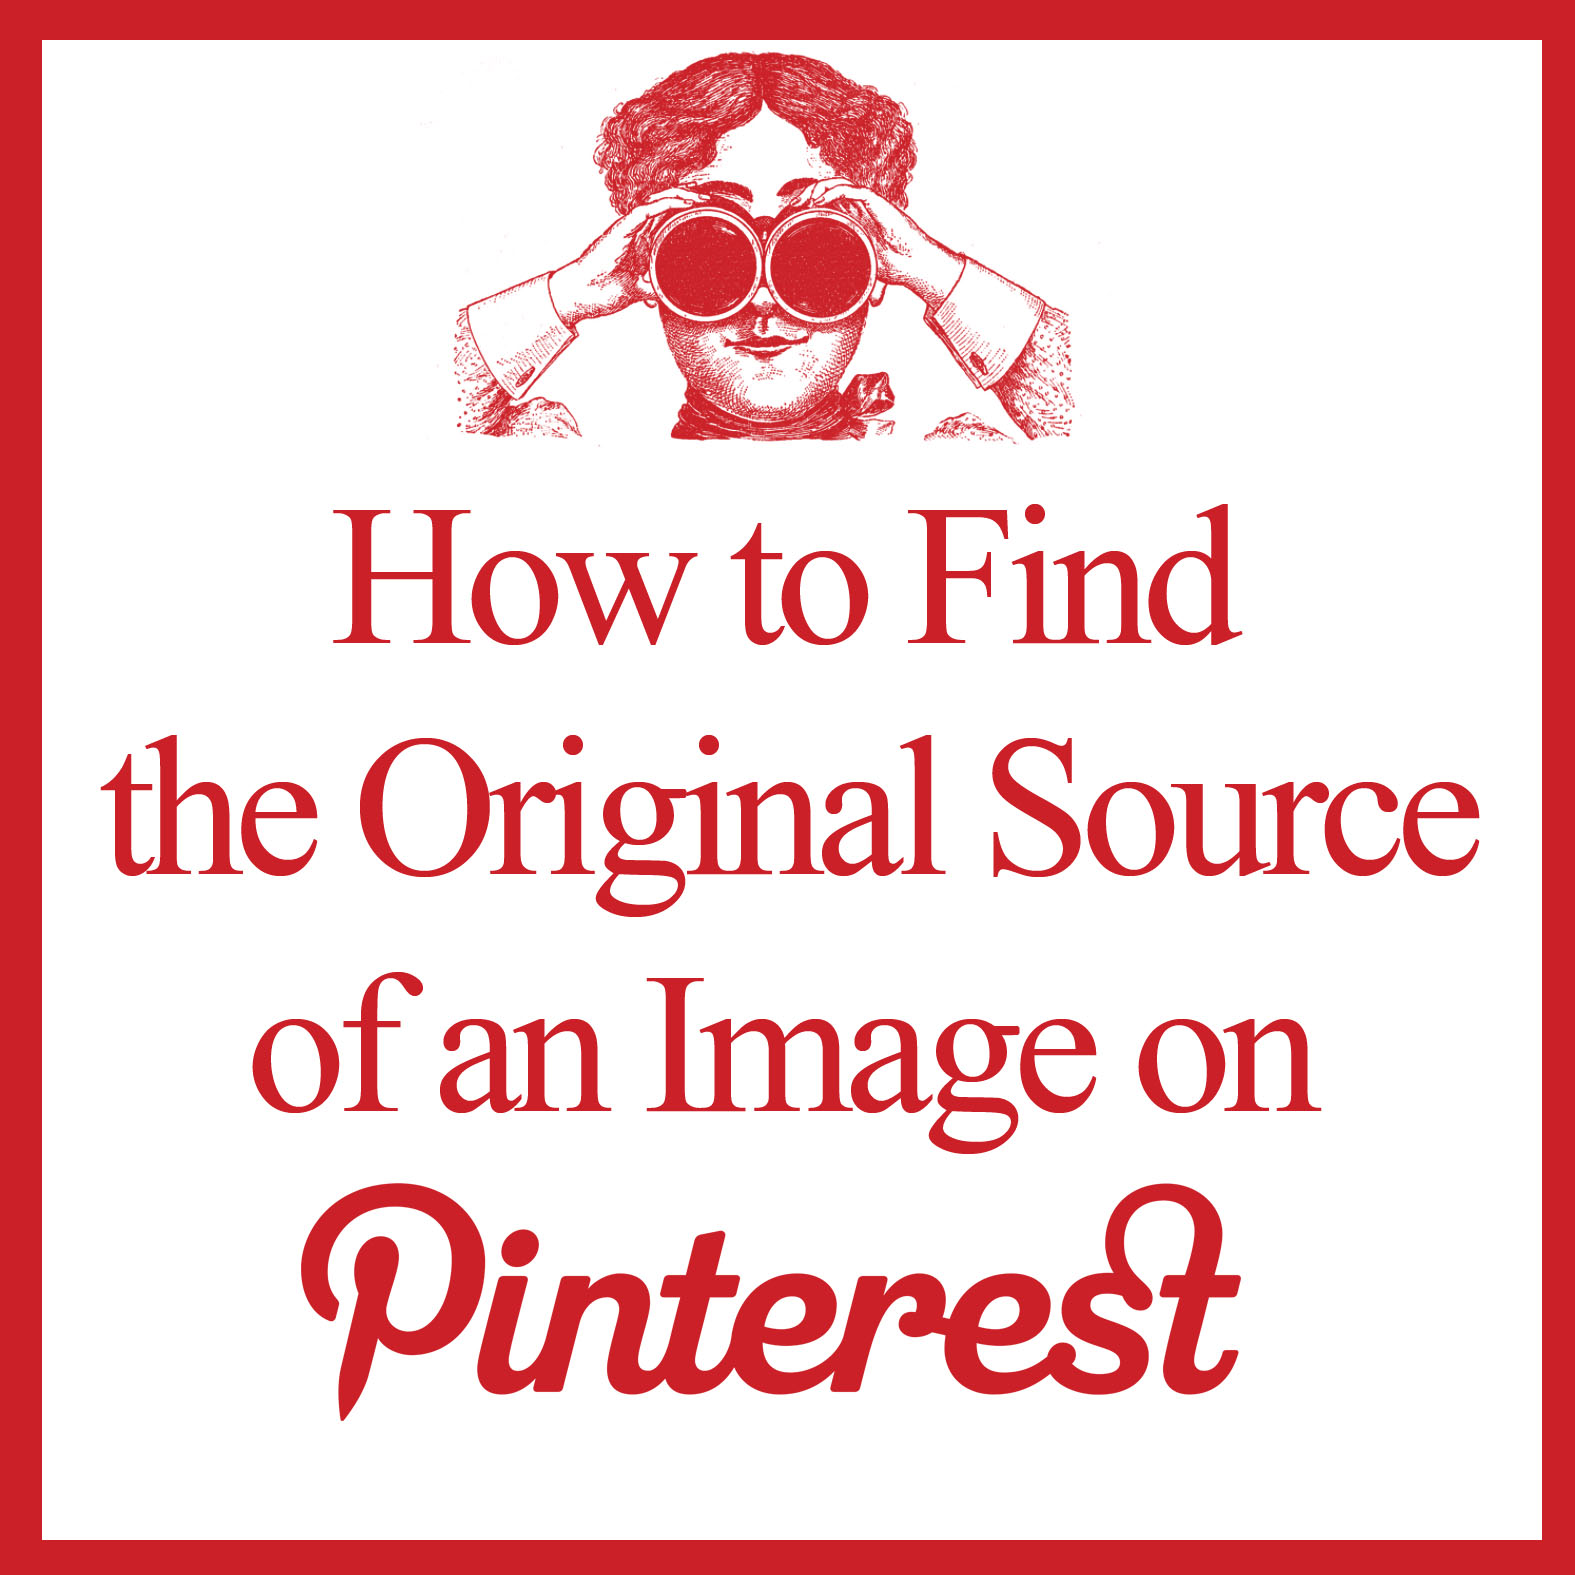 How to Find the Original Source of an Image on Pinterest! - The ...